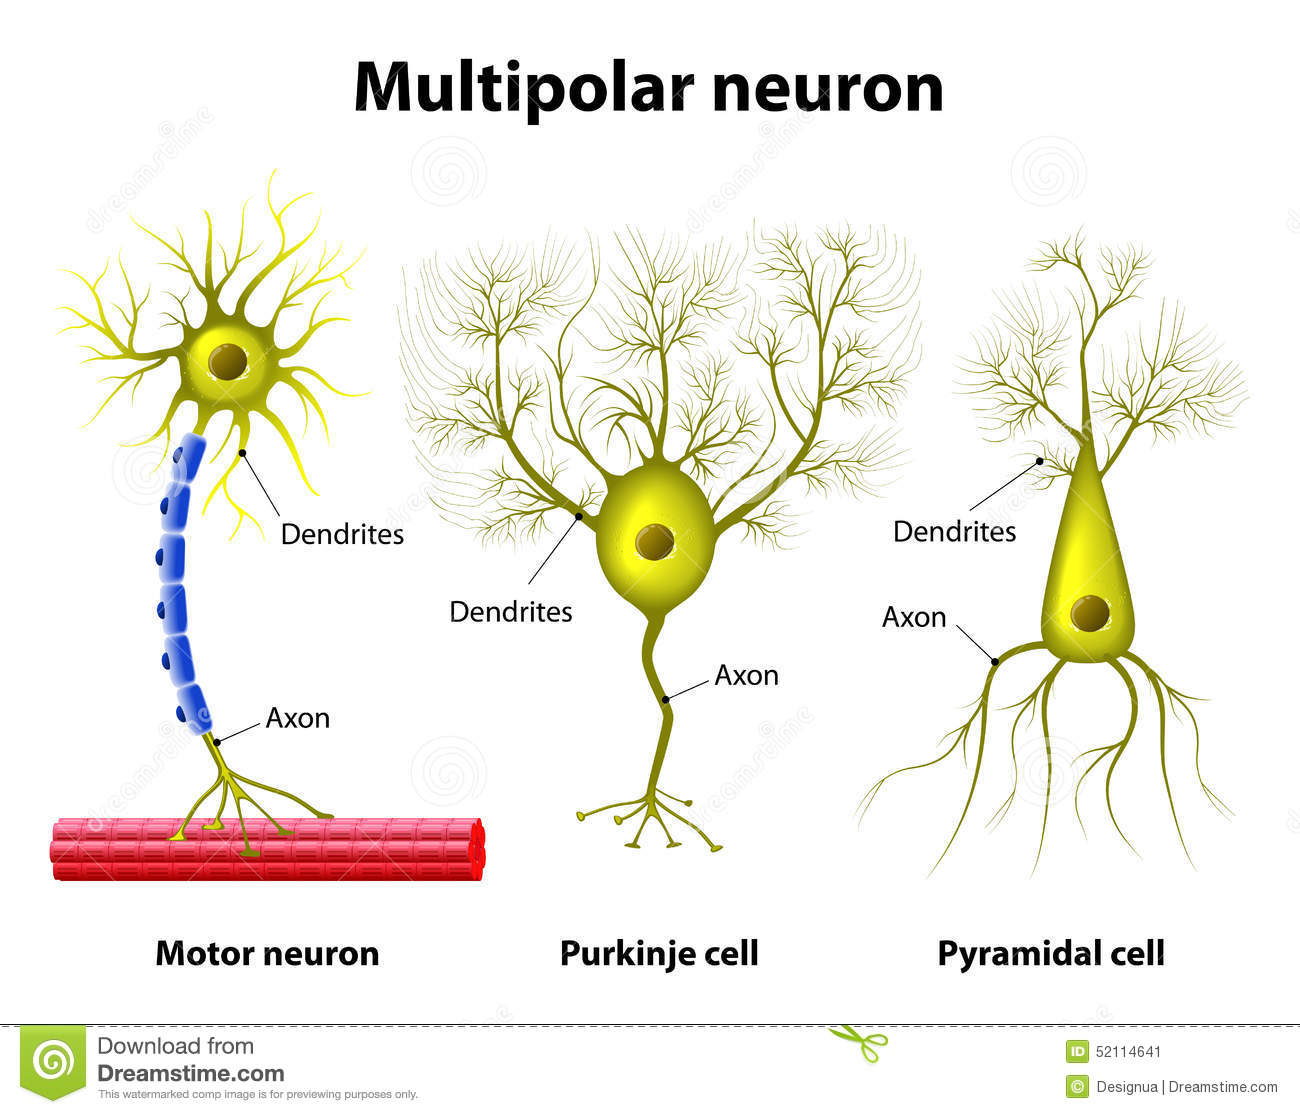 types multipolar neurons different kinds pyramidal cell purkinje cell motor neuron human anatomy 52114641